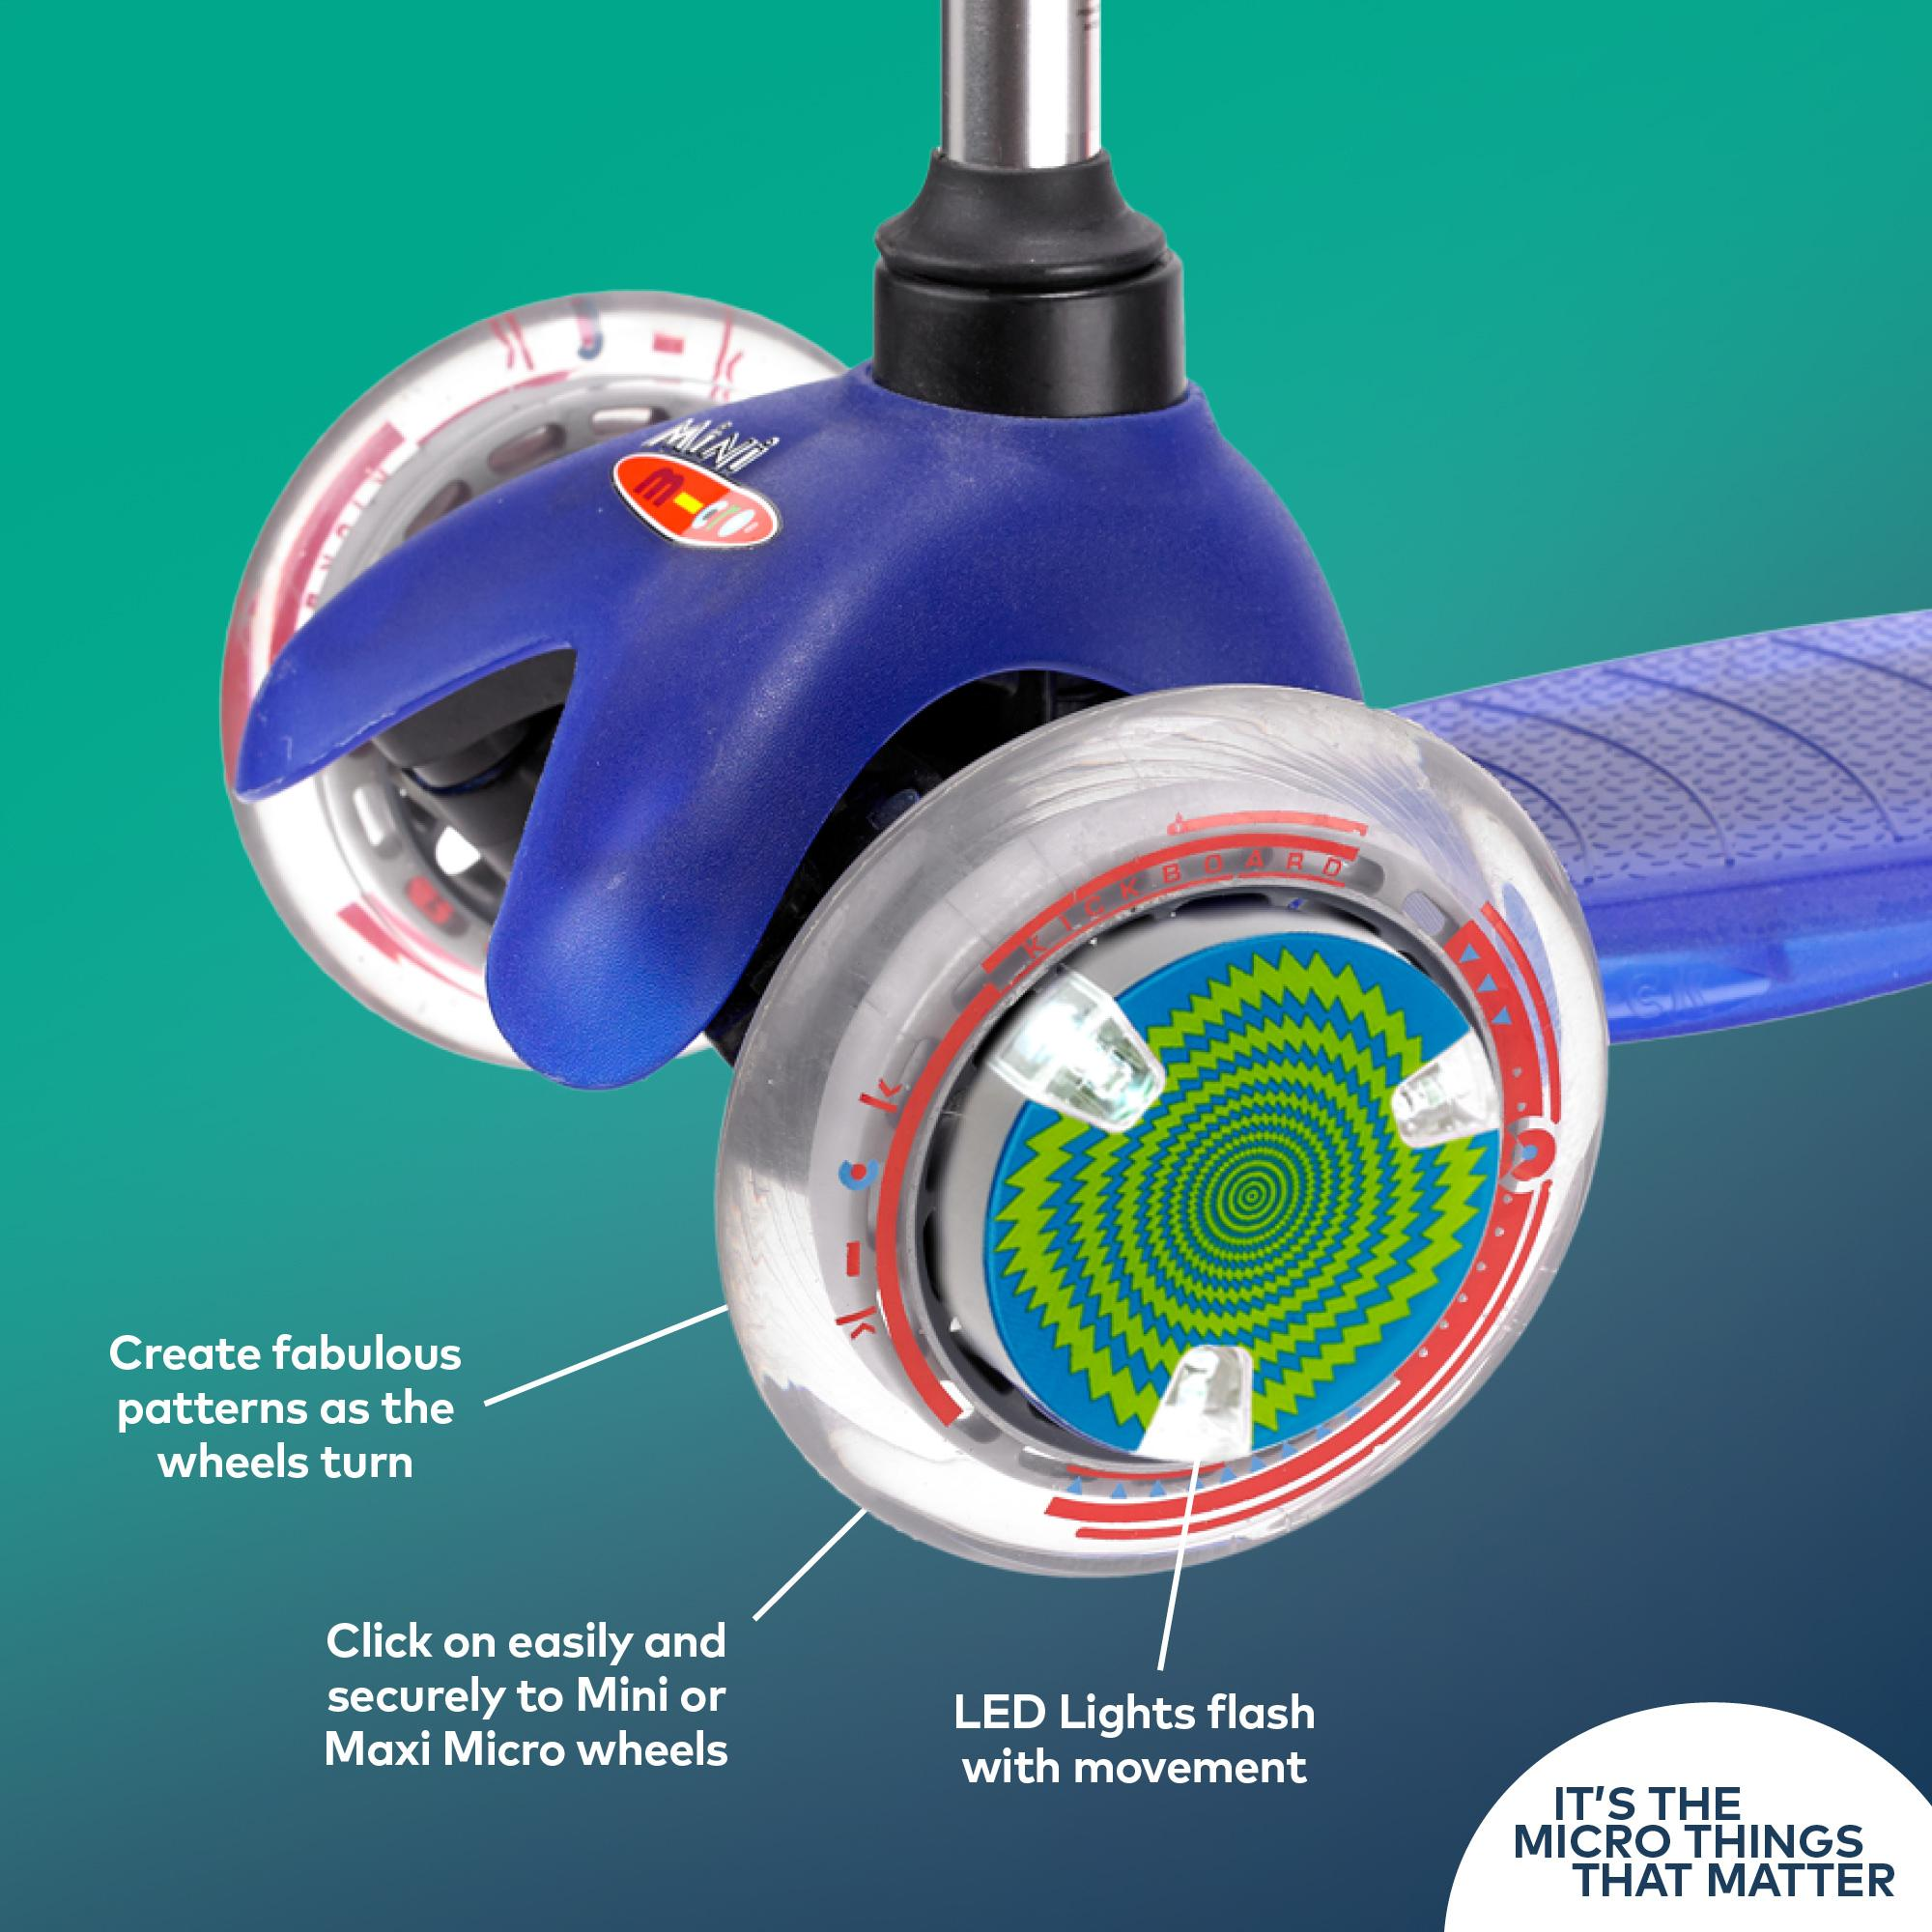 Micro Scooter Wheel Whizzer LED Safety Light 40h Battery Life Blue-Green